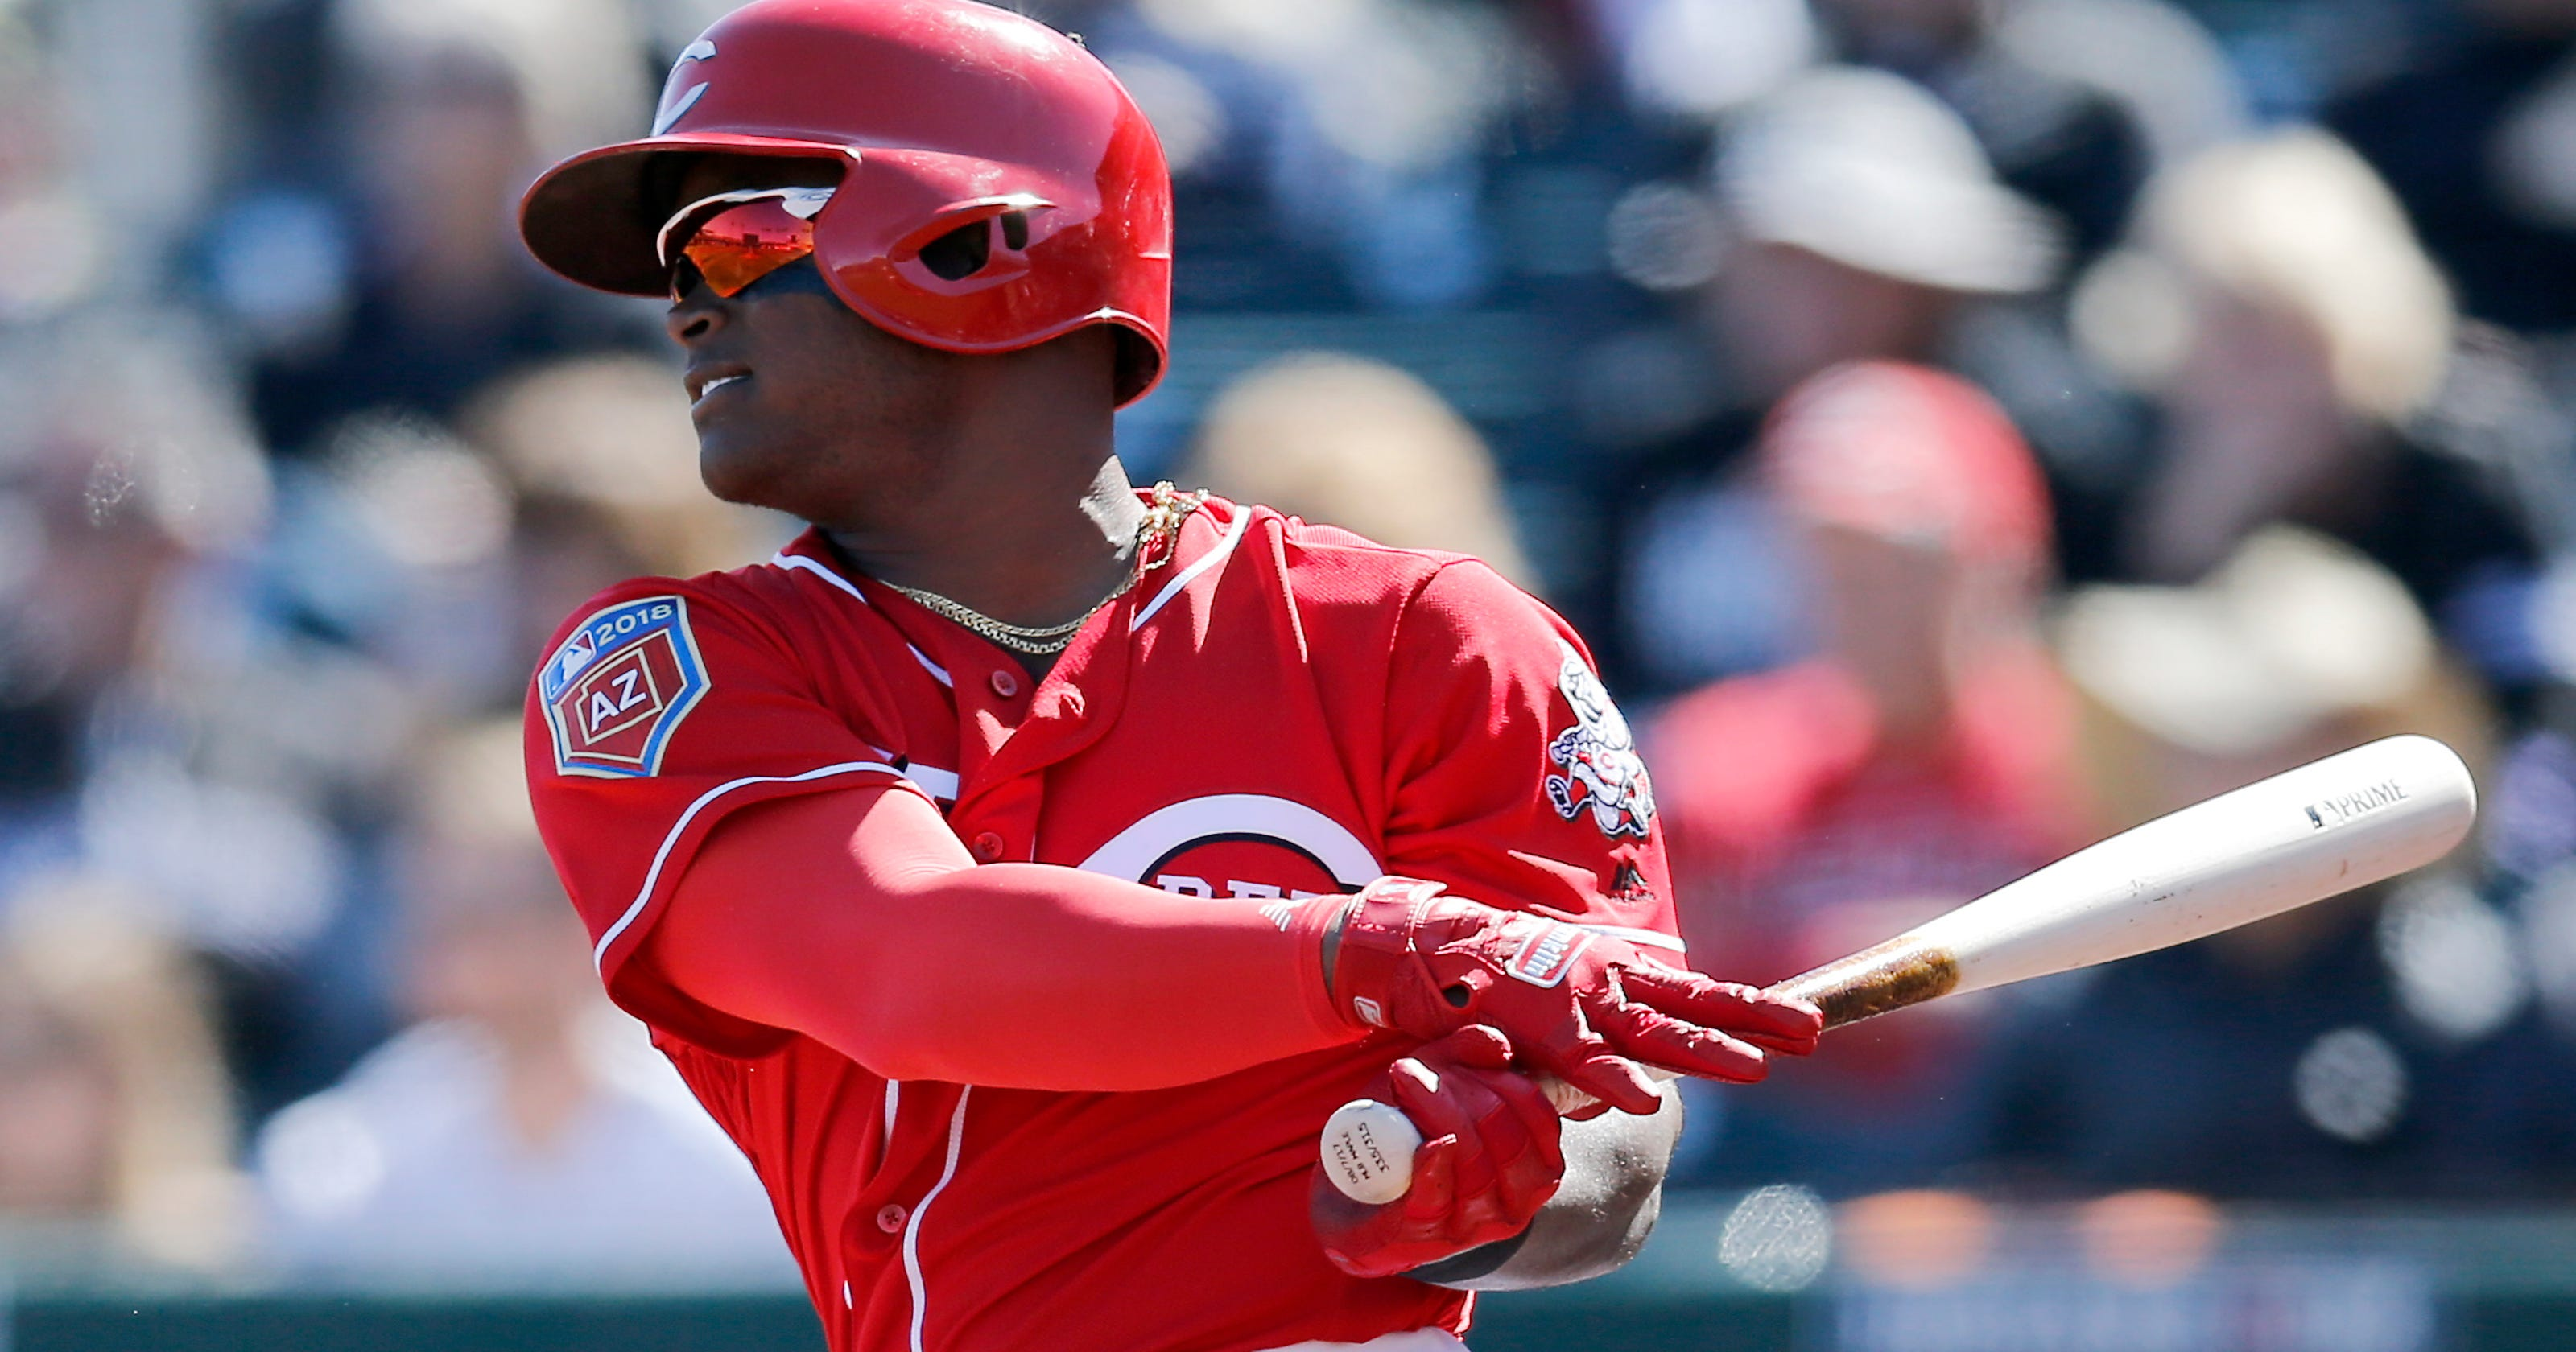 Dilson Herrera Promoted To Reds Roster Adding Solid Bat Bench